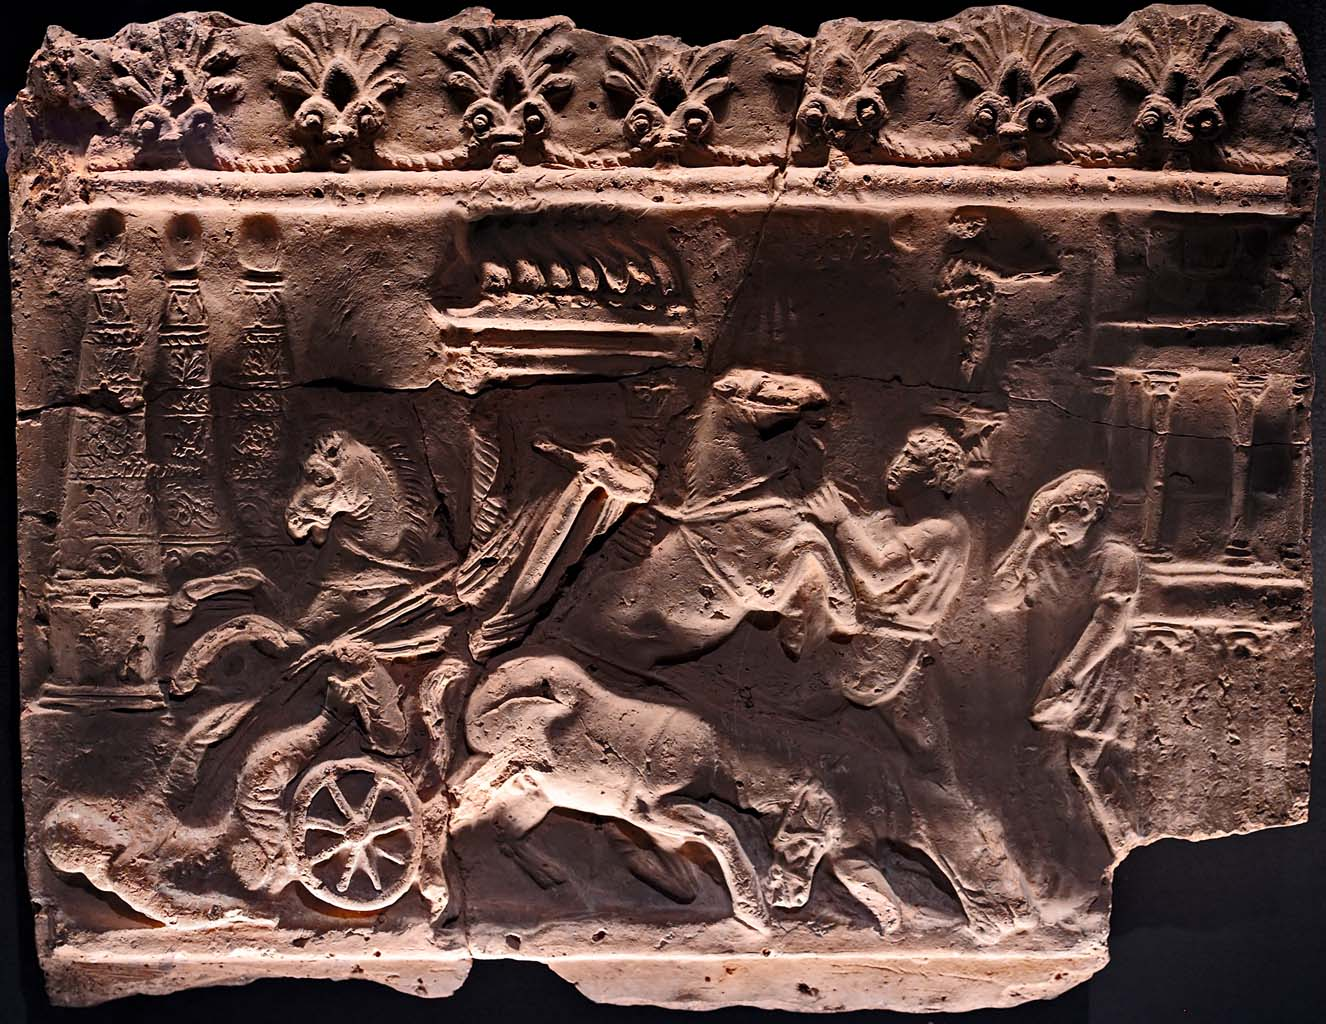 Campana tile with a relief scene of chariot race. Terracotta. 1st century CE. Inv. No. V 49. Vienna, Museum of Art History